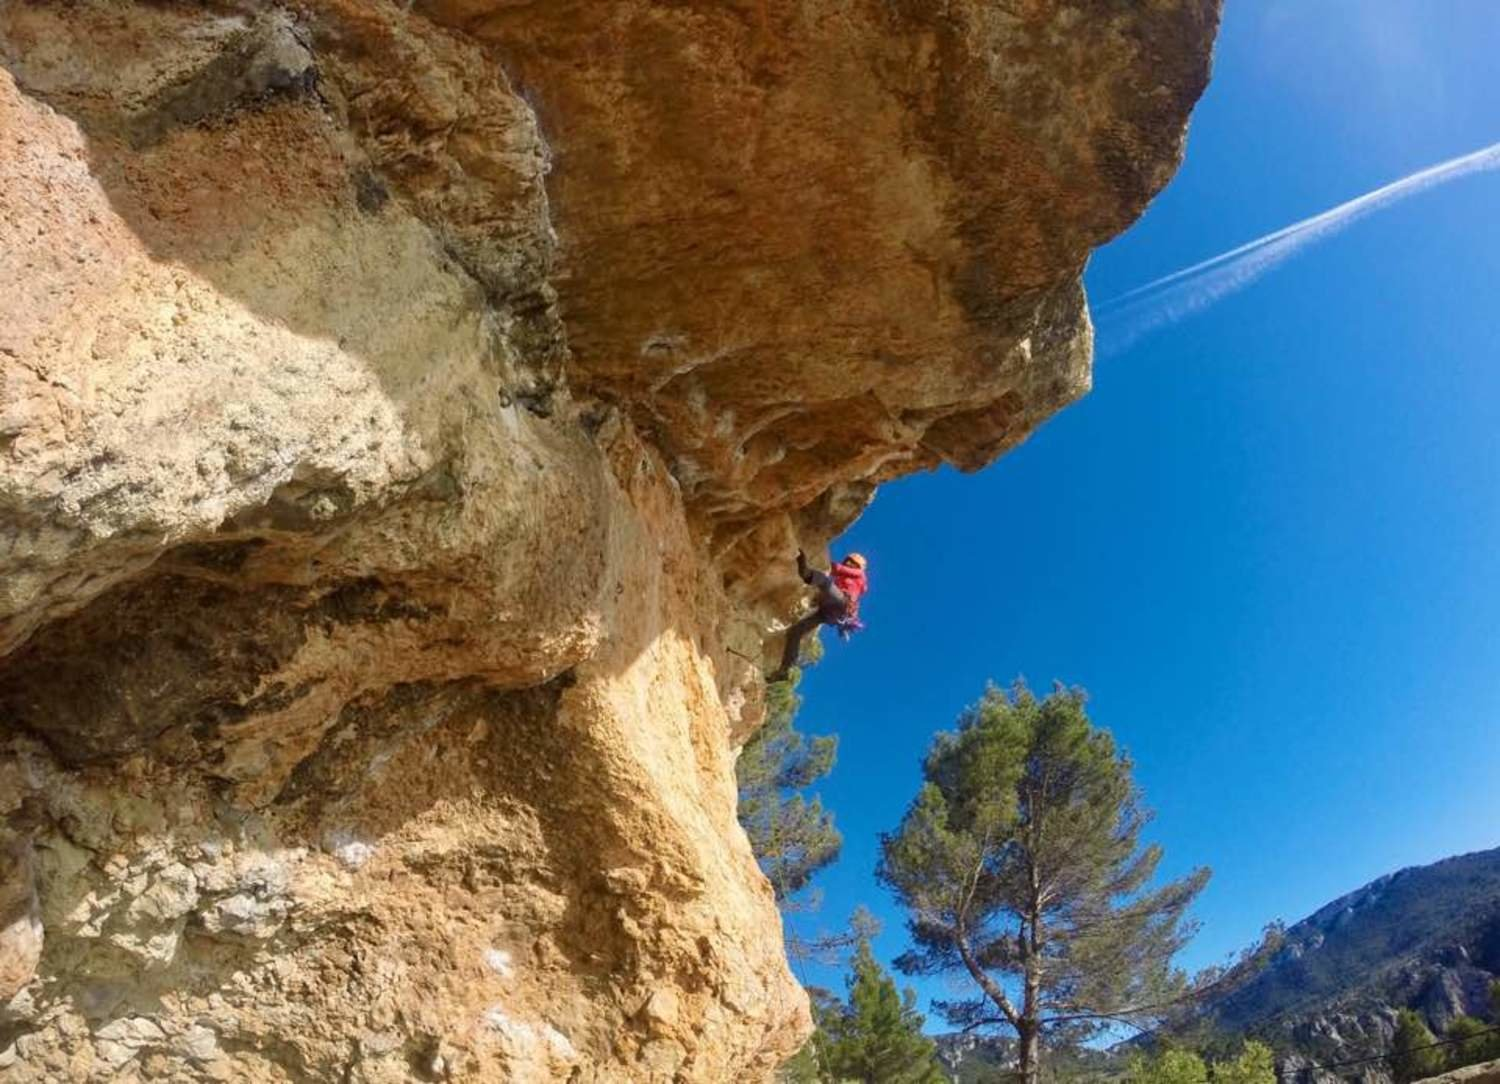 The author climbing in Mallorca, Spain. Photo courtesy Grace Anderson